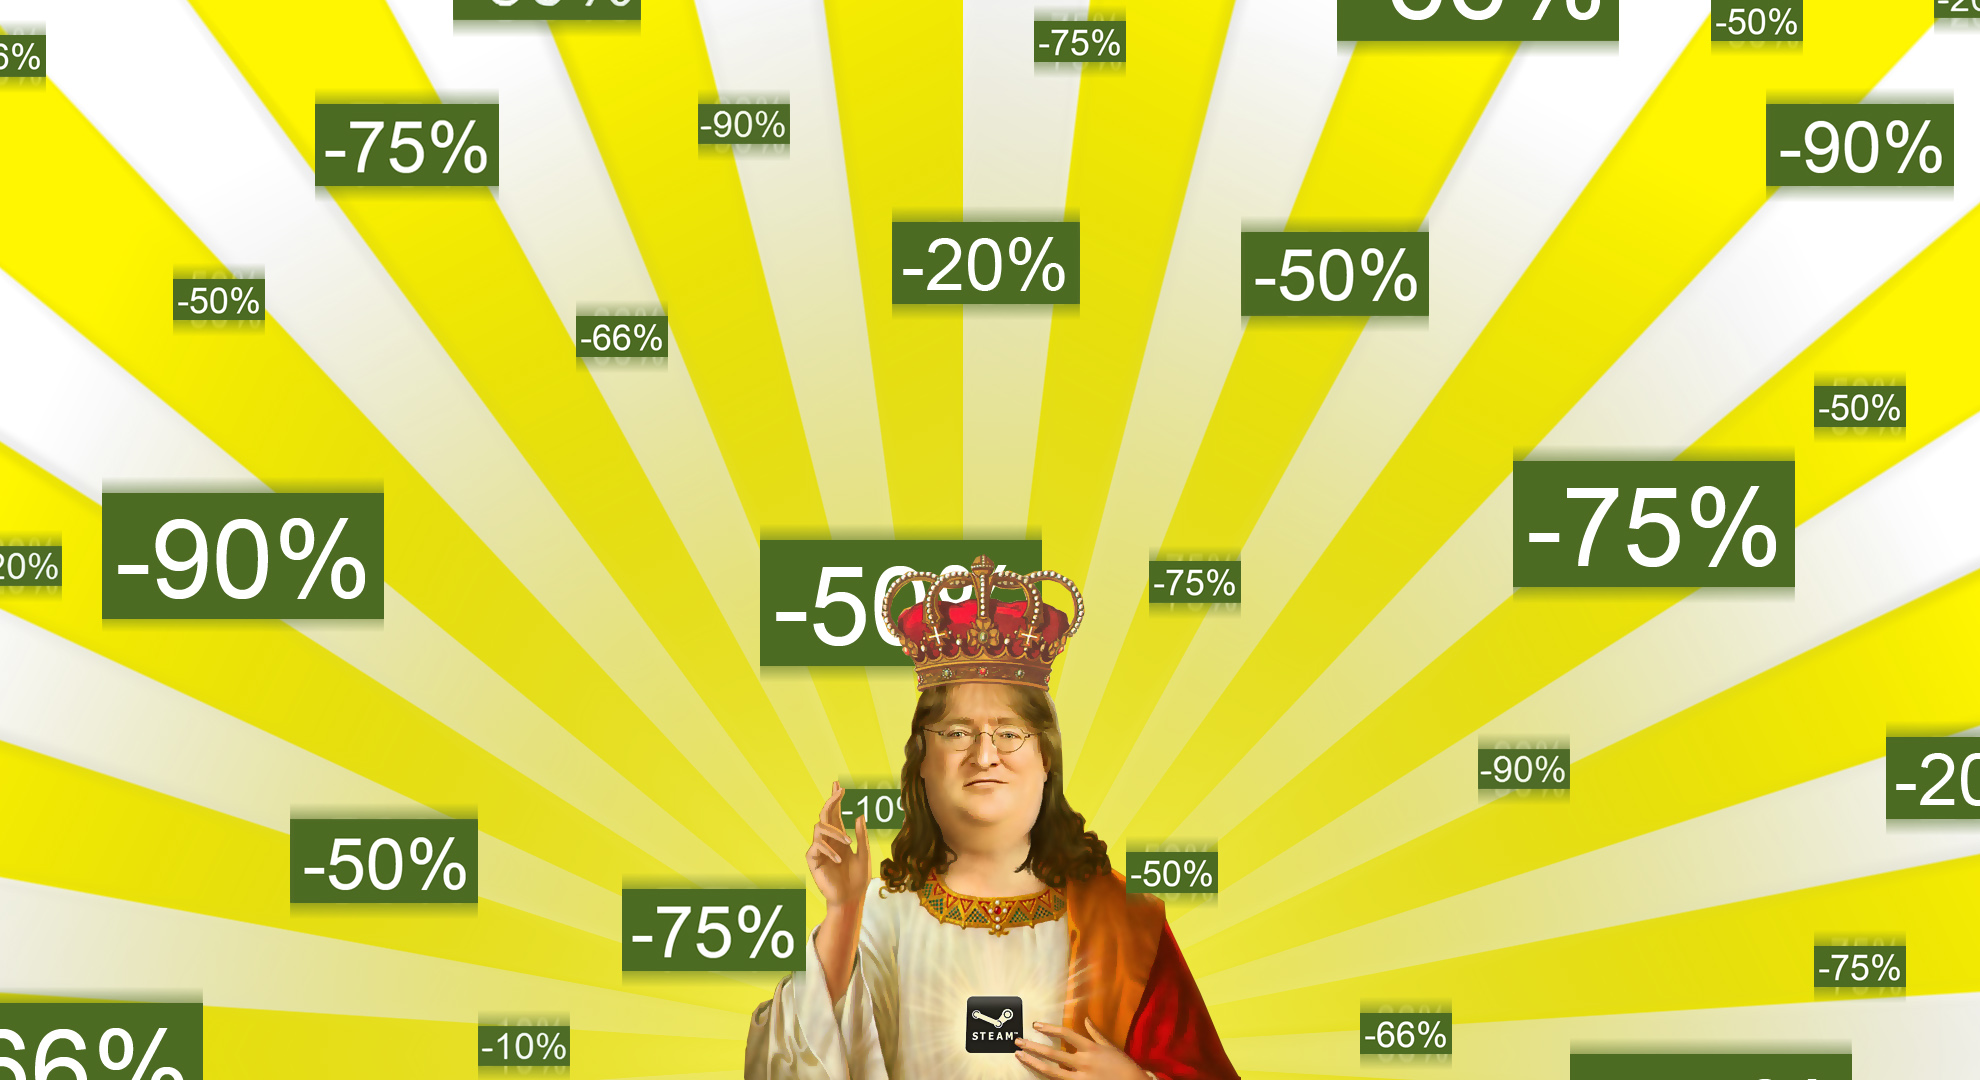 http://images.eurogamer.net/2014/usgamer/Steam-Sale-Banner-01.jpg